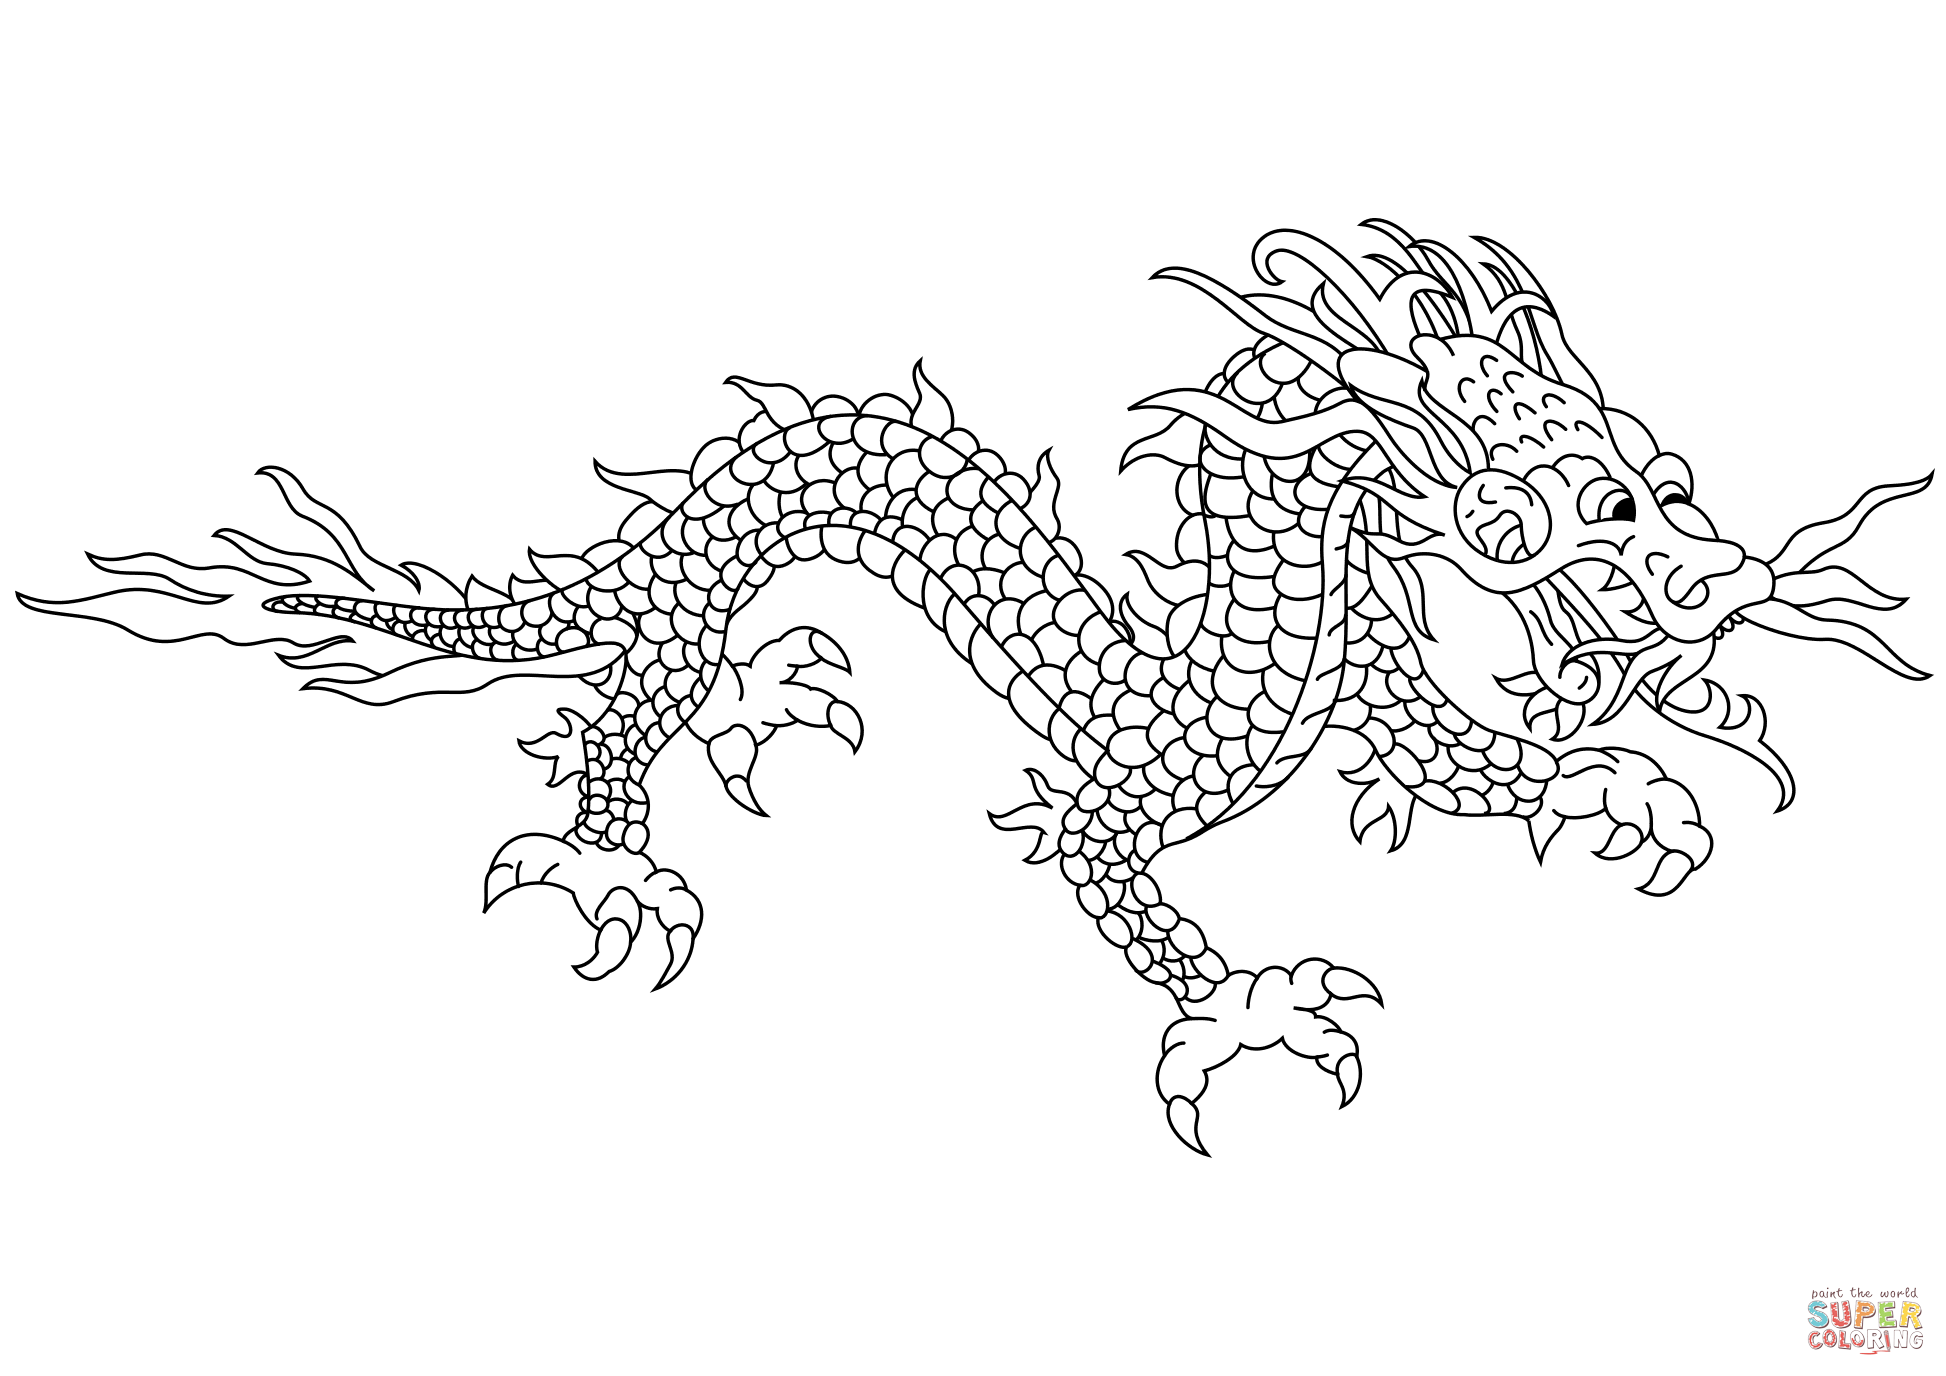 chinese dragon colouring pictures chinese dragon coloring page free printable coloring pages pictures colouring dragon chinese